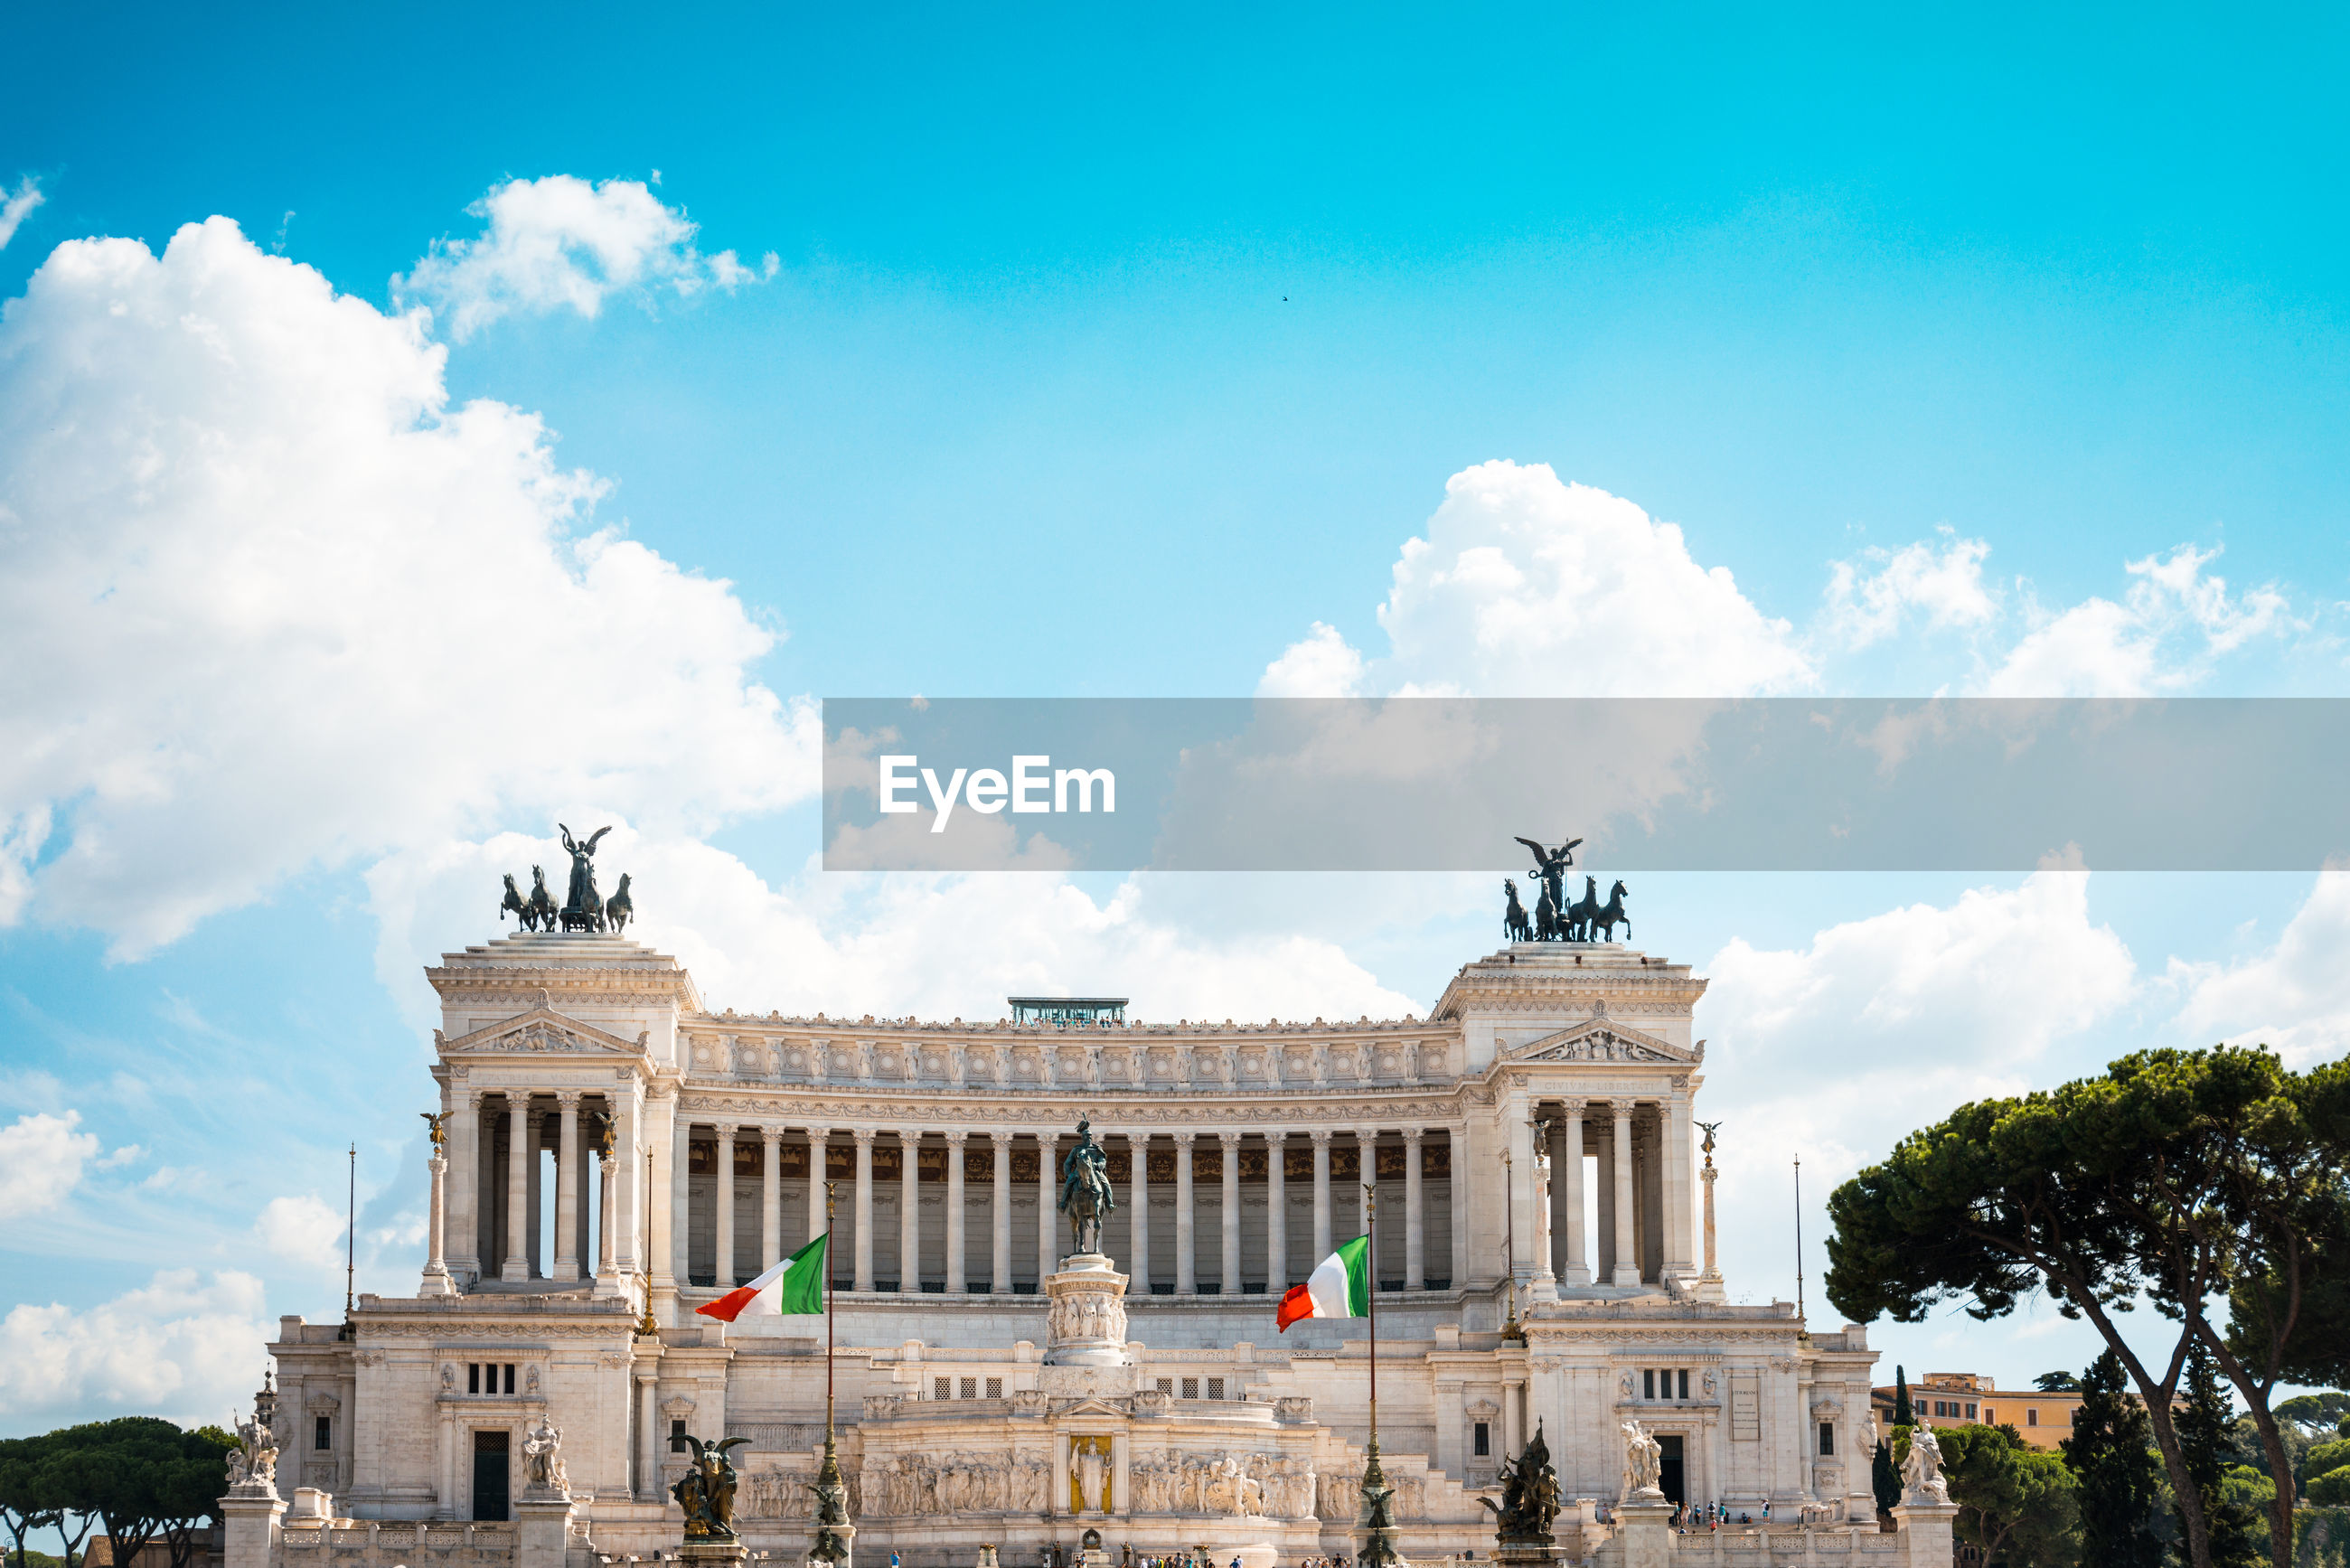 Italian flags by altare della patria against cloudy sky